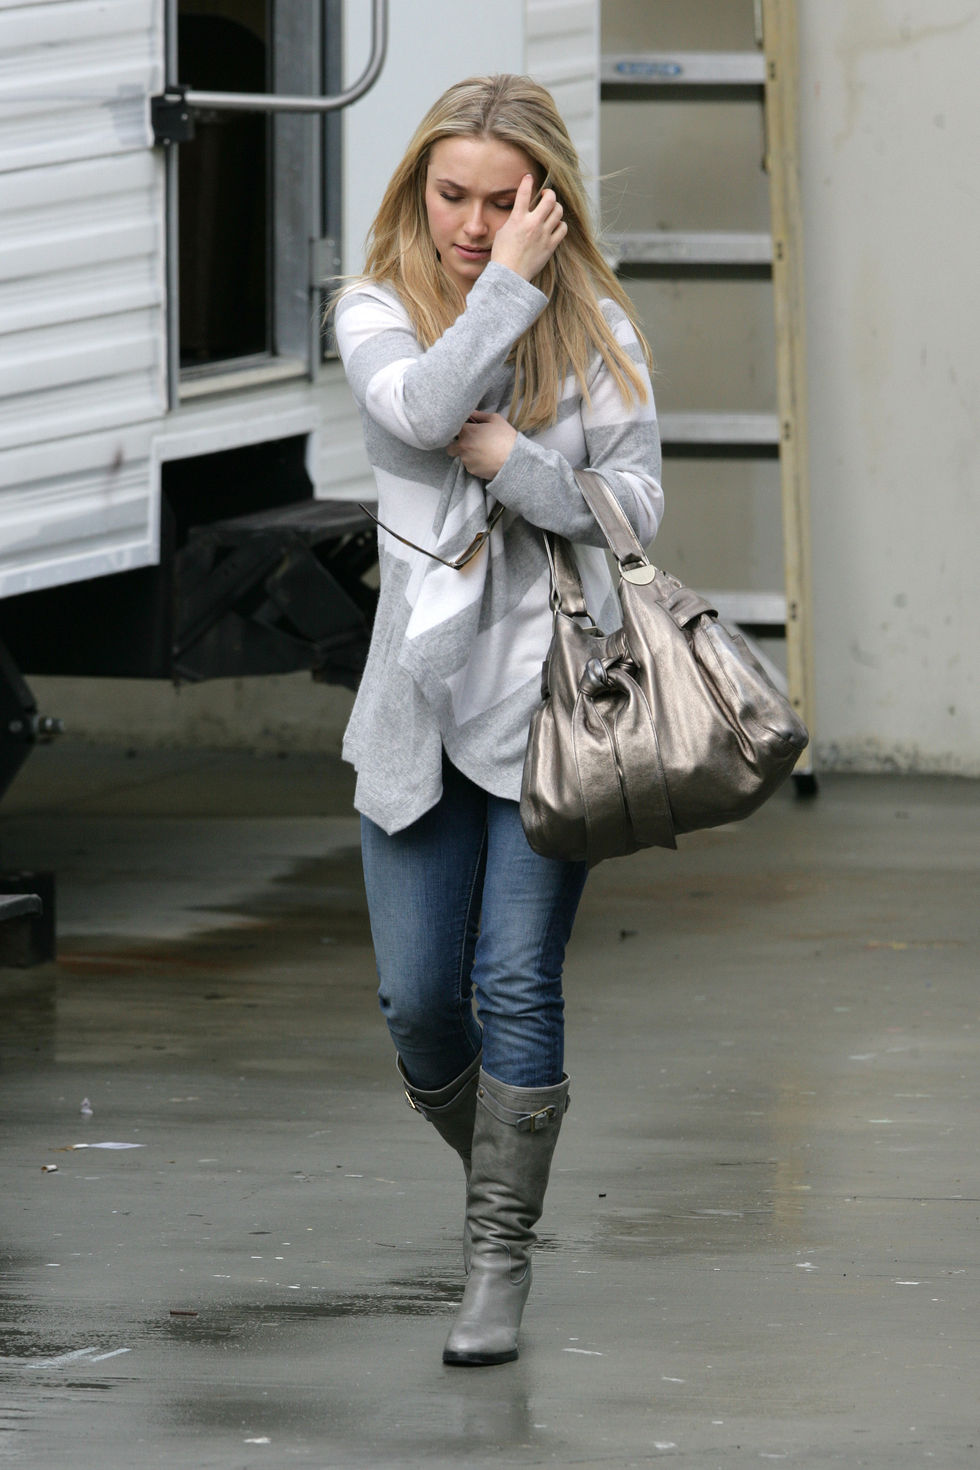 hayden-panettiere-cheerleader-outfit-candids-on-the-set-of-heroes-01